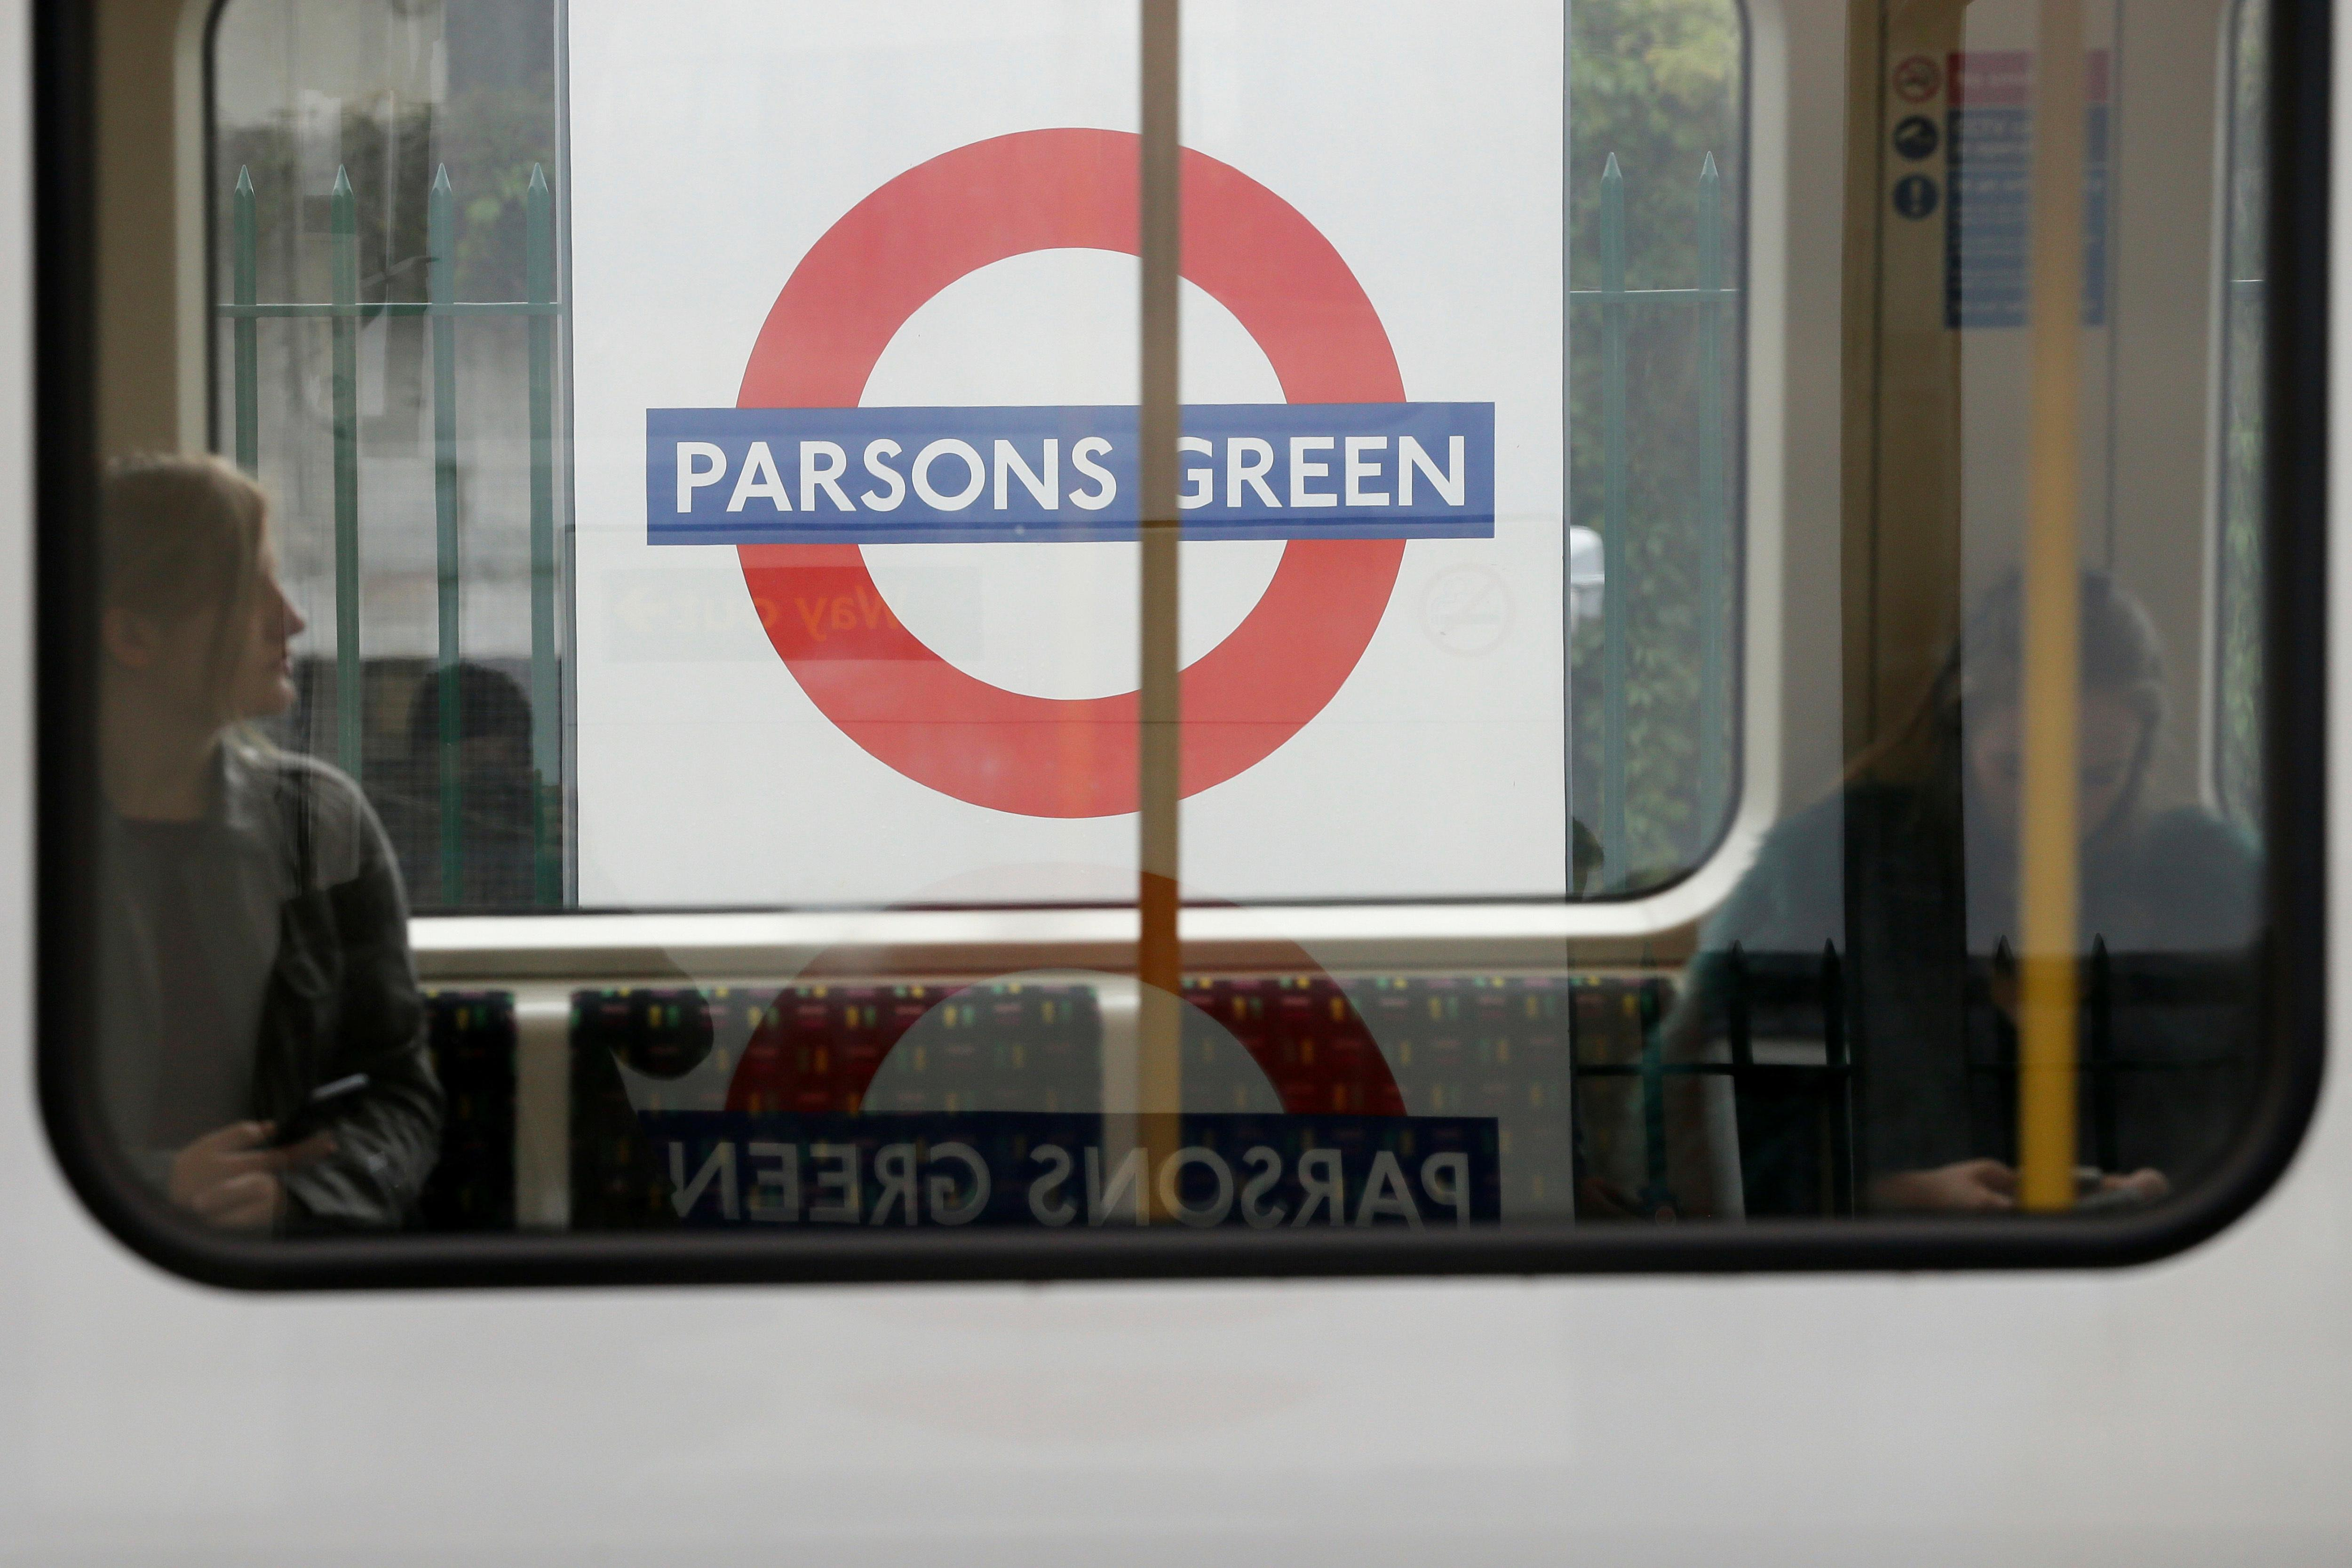 Passengers on a train at Parsons Green subway station after it was reopened following a terrorist attack on a train at the station yesterday in London, Saturday Sept. 16, 2017. British authorities are searching for suspects in the London subway blast that injured more than two dozen people as hundreds of soldiers are being deployed across the country. (AP Photo/Tim Ireland)